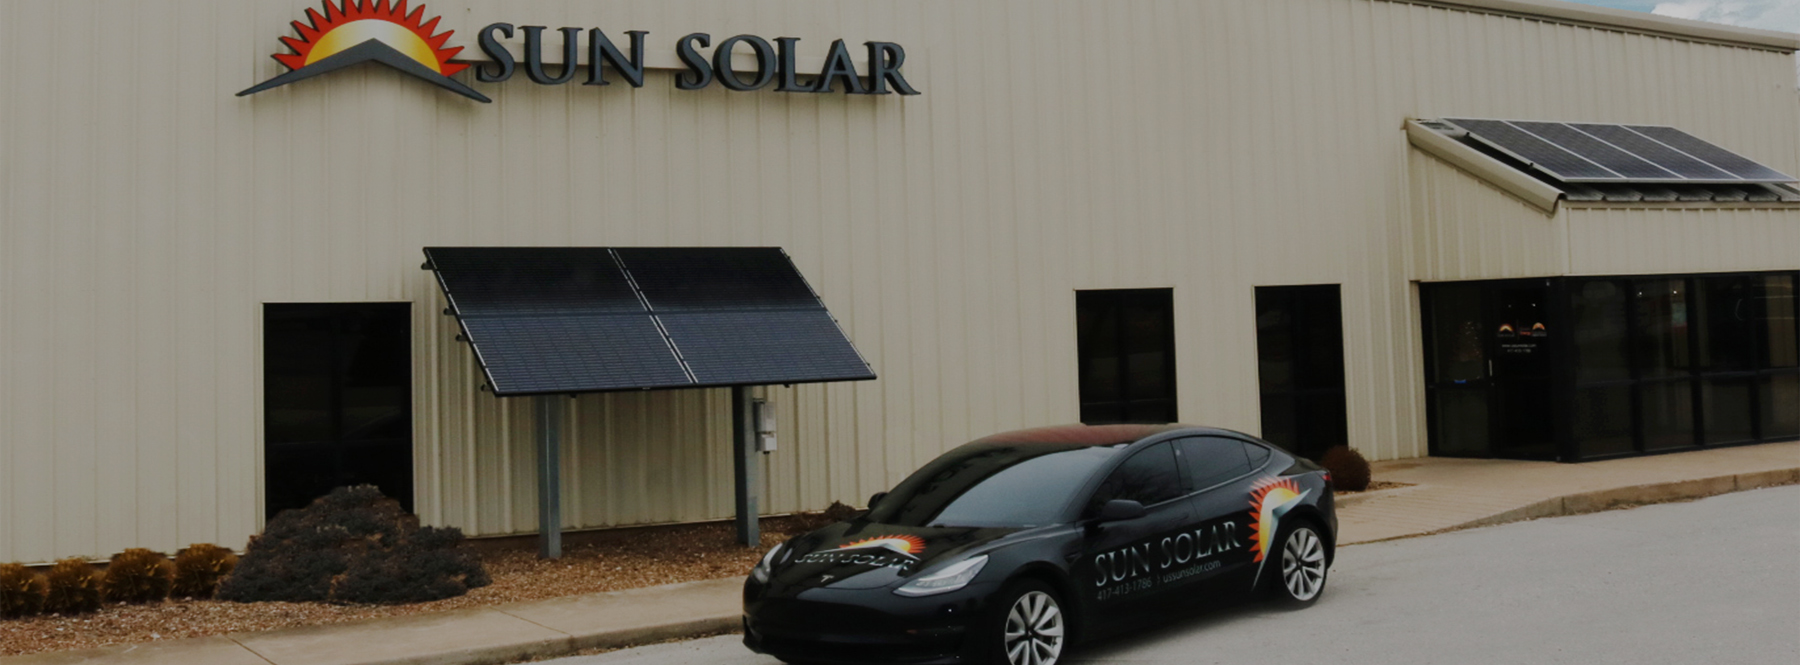 Black Tesla Model 3 parked outside of a tan building, owned by Sun Solar a solar panel installer in Springfield, Missouri, with ground and roof mounted solar panels.